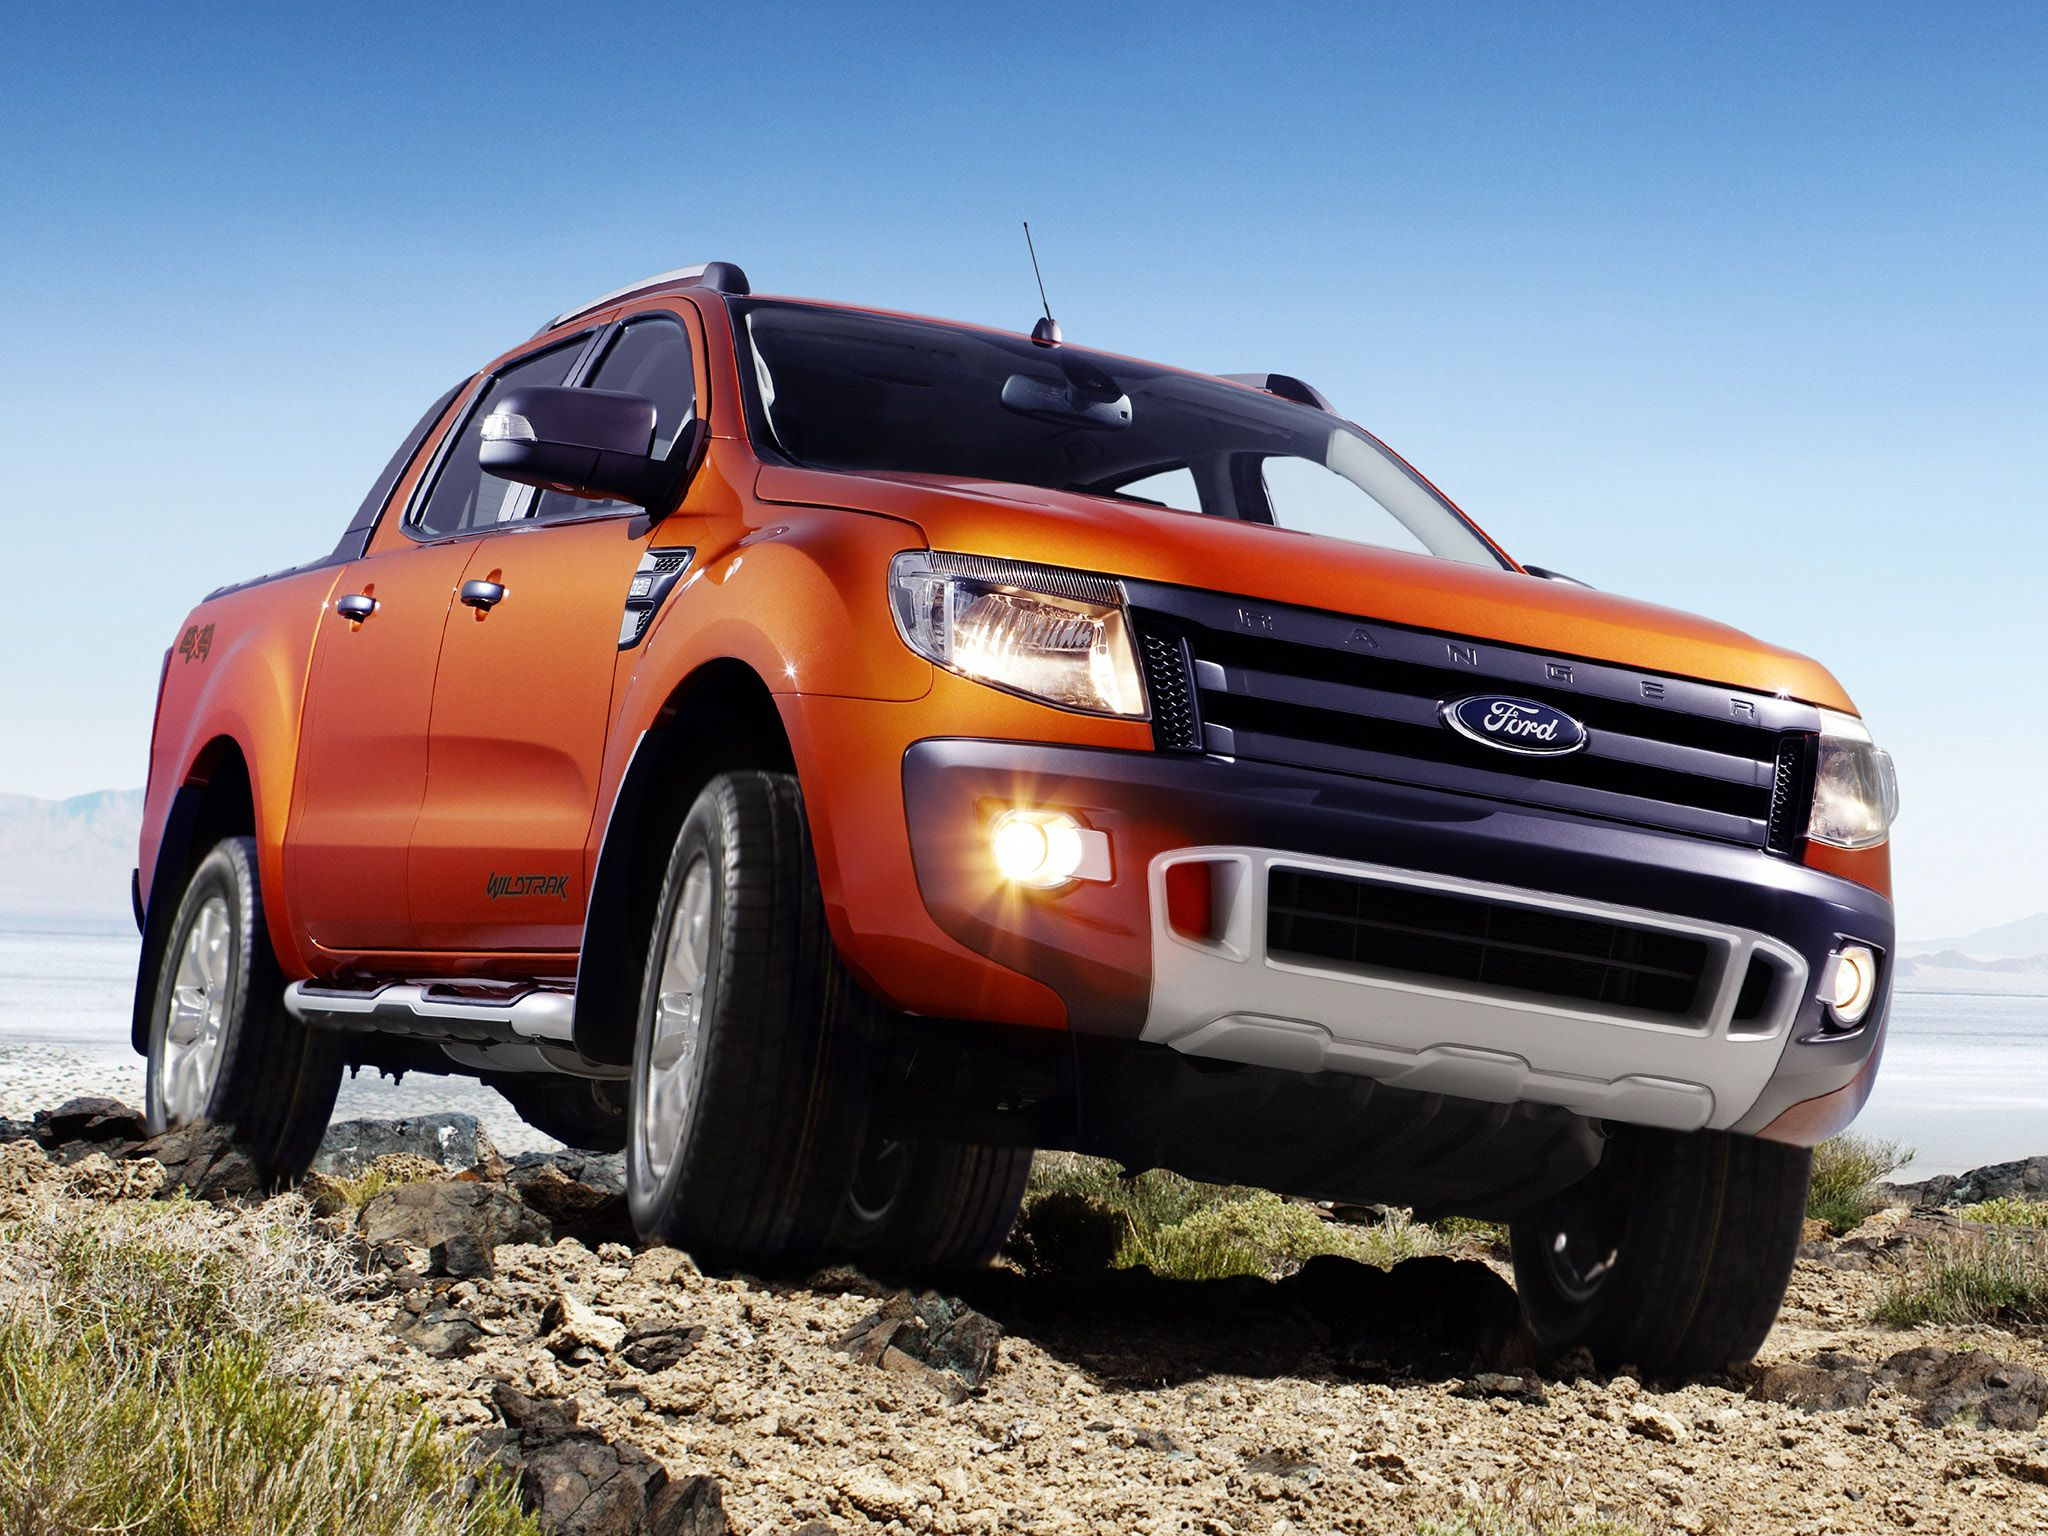 Ford unveiled the newest truck named 2016 ford ranger one of the biggest updates is an improved five cylinder diesel engine when it comes usa market